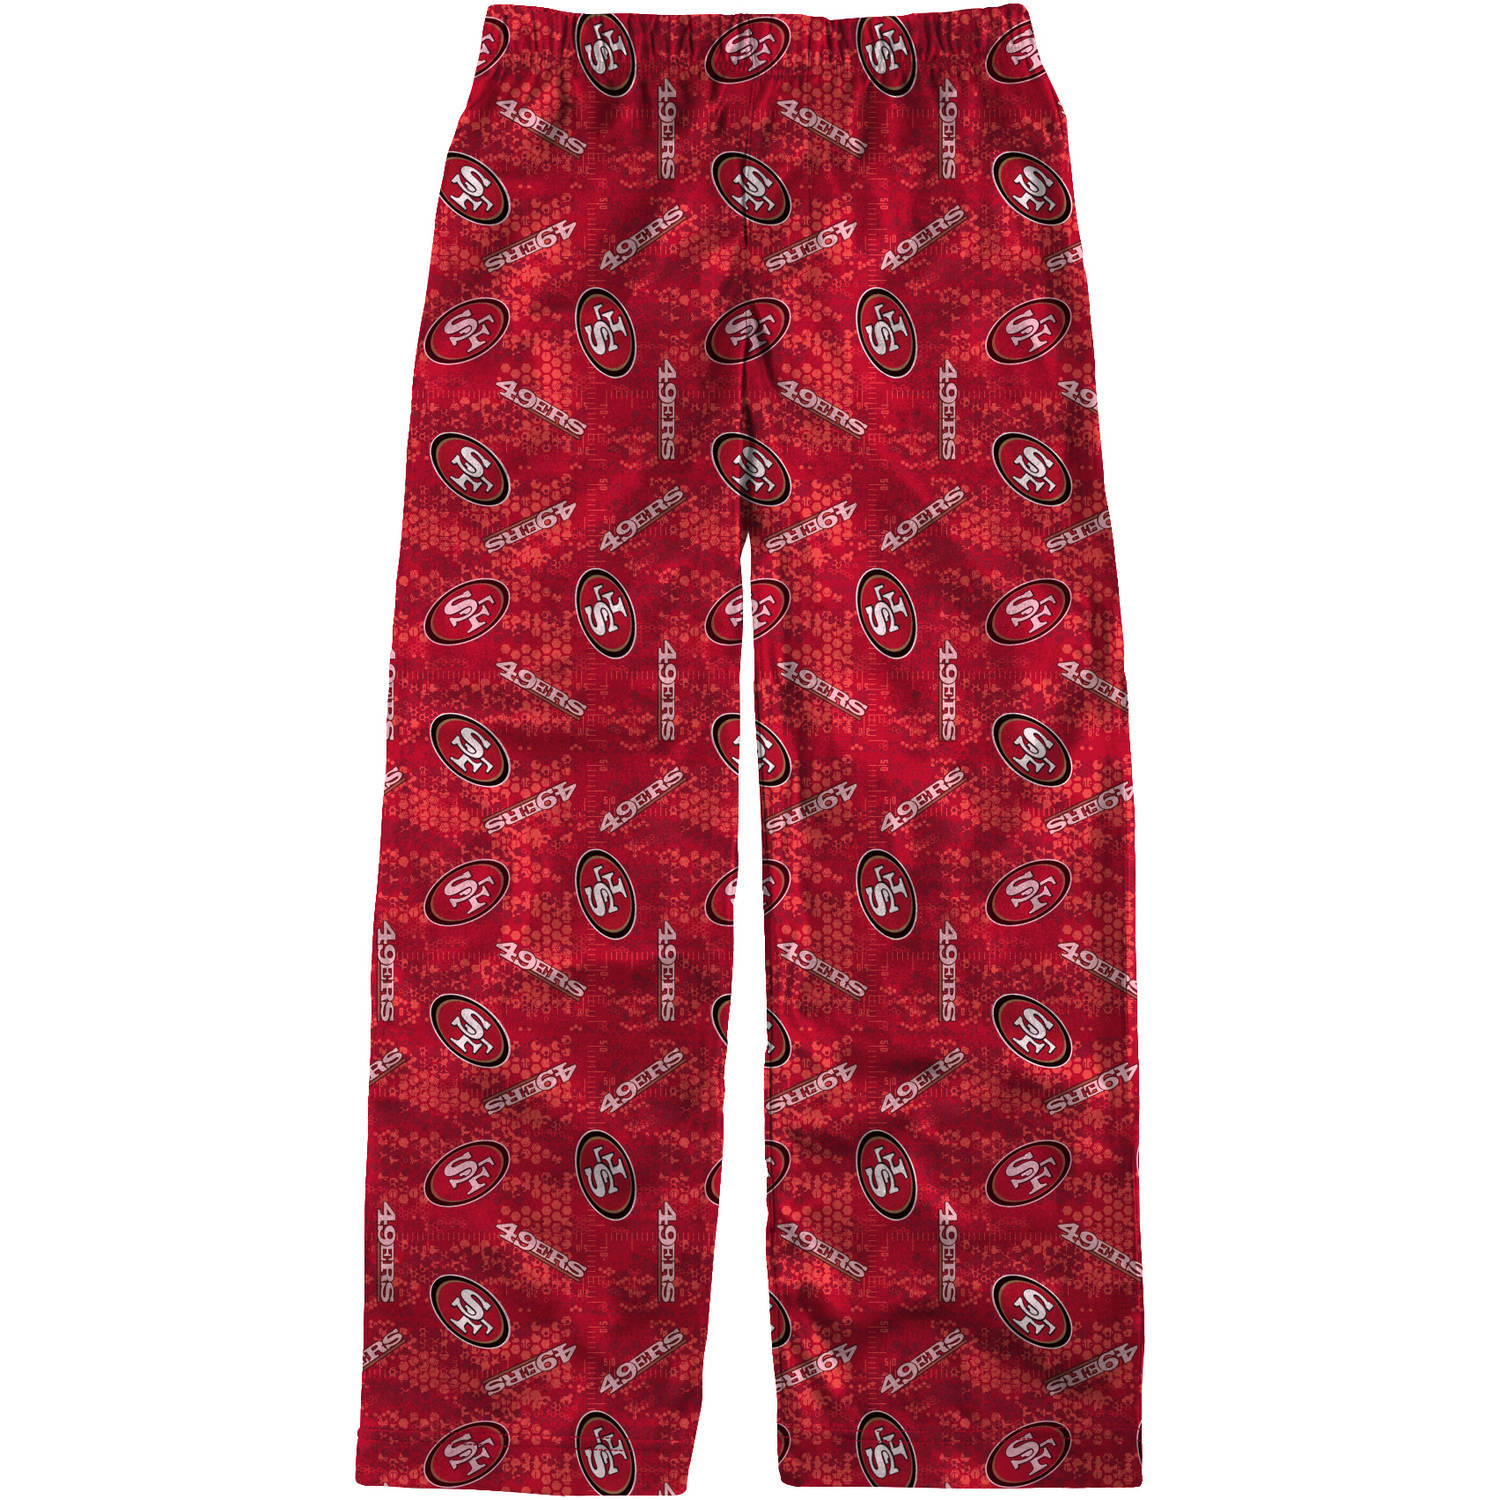 NFL San Francisco 49ers Youth Lounge Pant